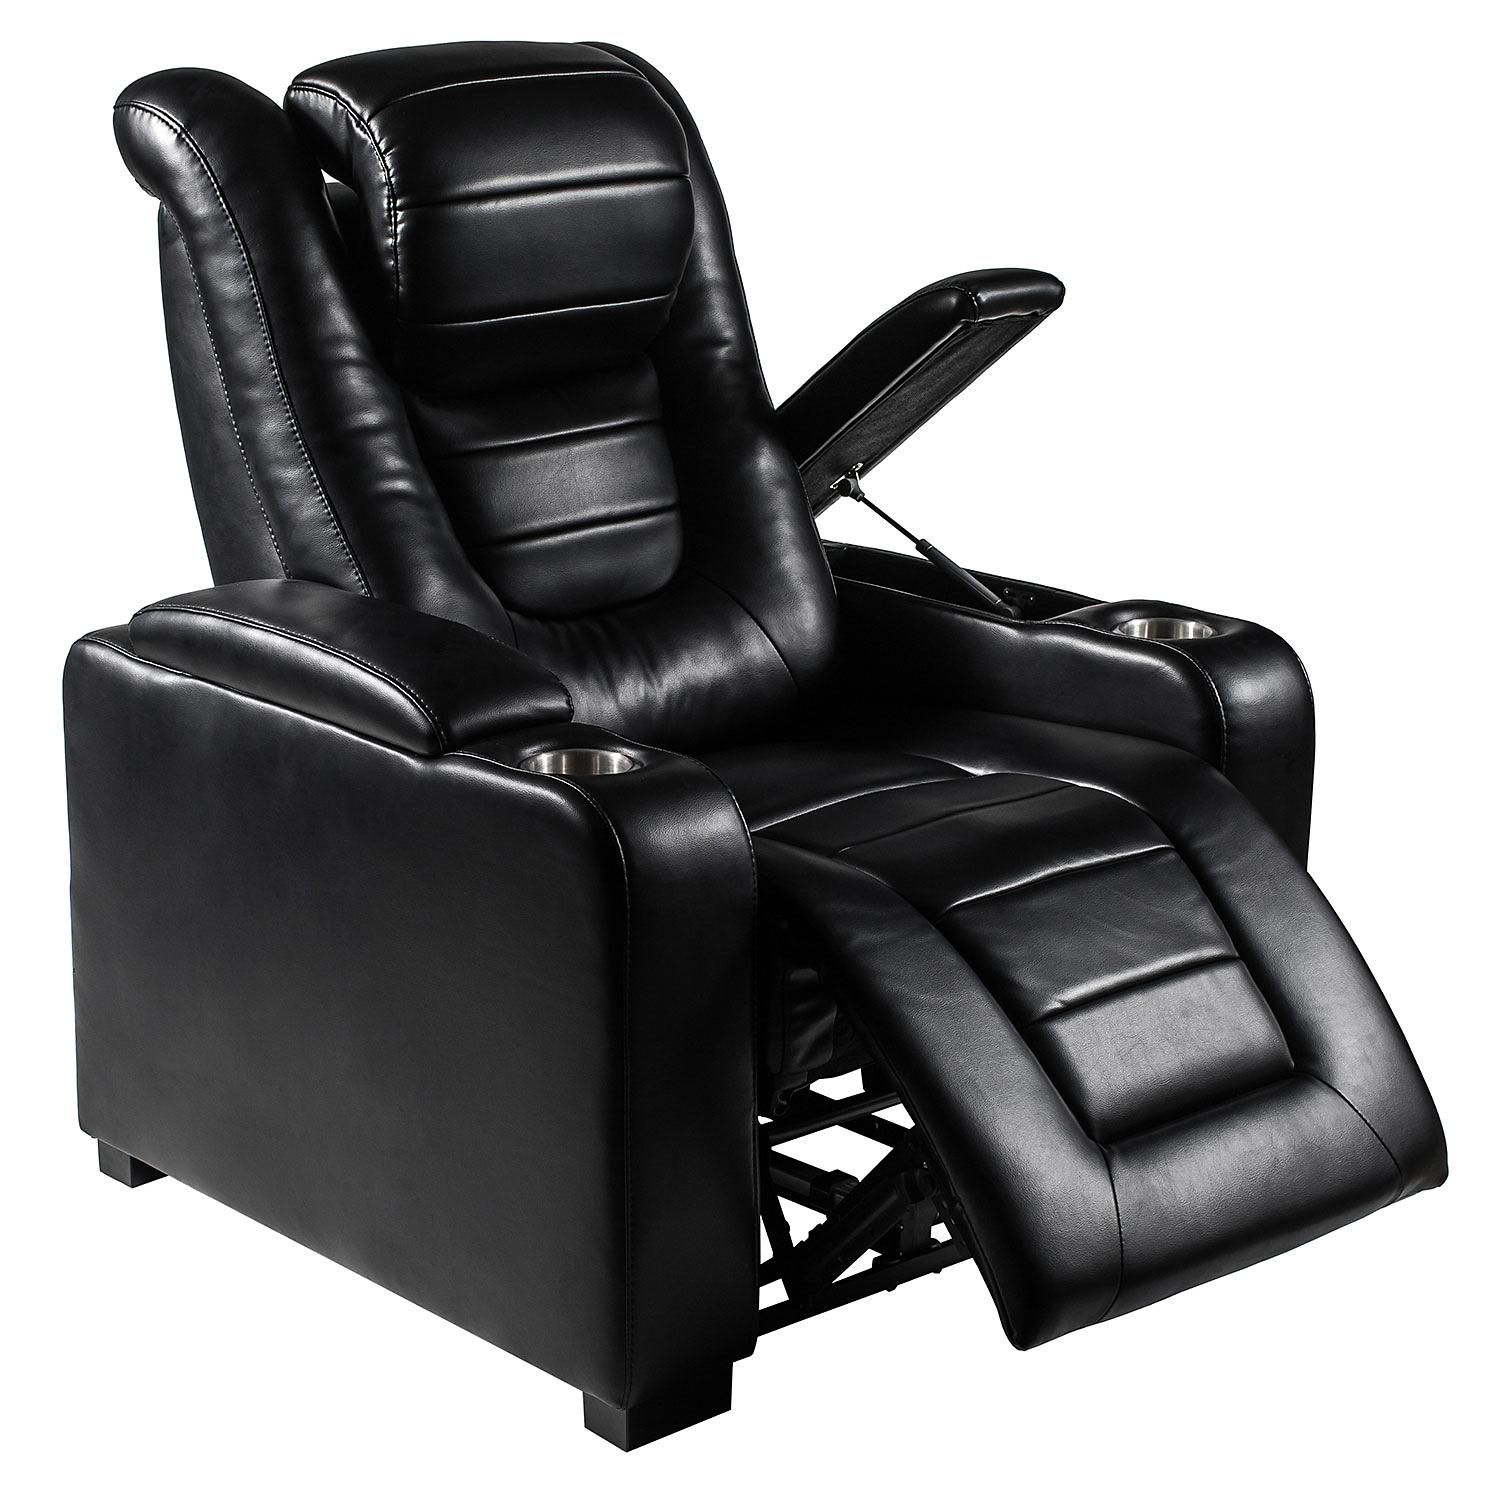 Myles Power Theater Recliner With Adjustable Headrest Assorted Colors Sam S Club Theater Recliners Theater Chairs Power Recliners